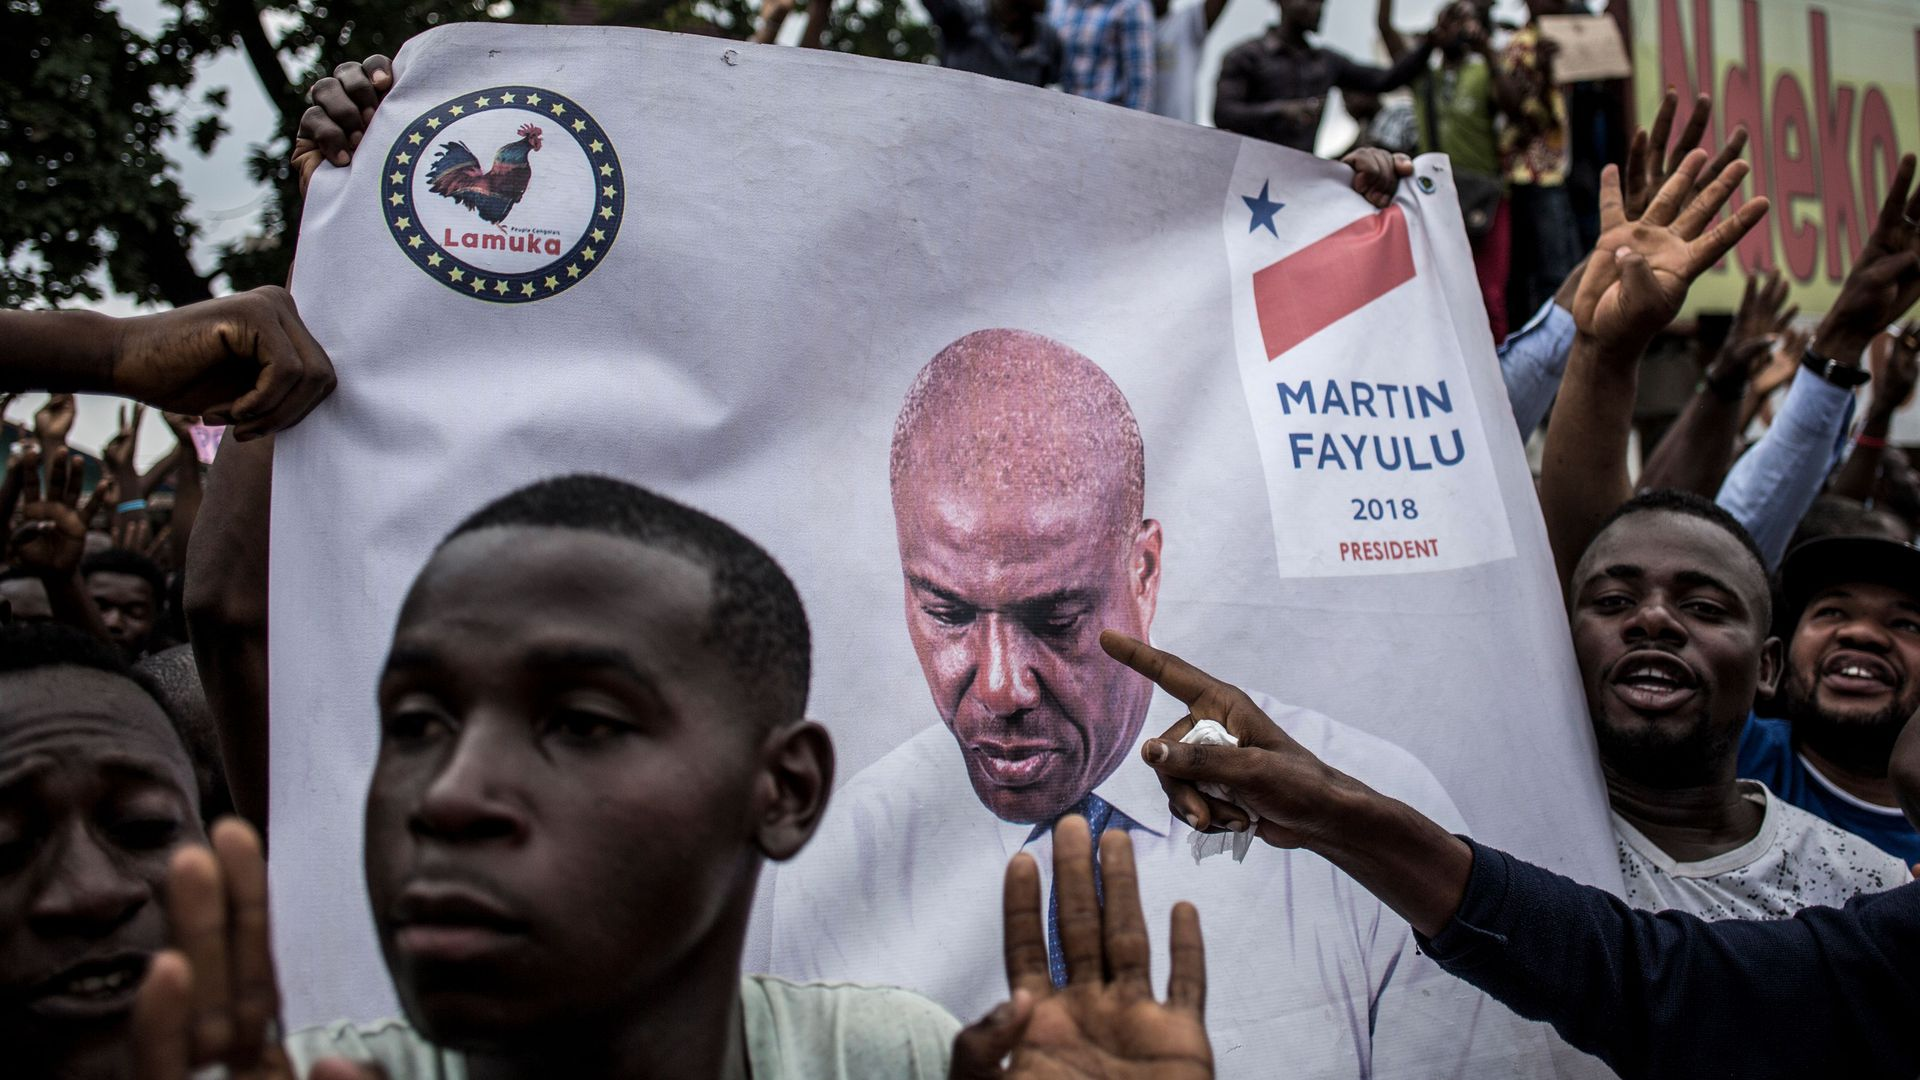 Supporters of Democratic Republic of Congo opposition leader and former presidential candidate Martin Fayulu in January.